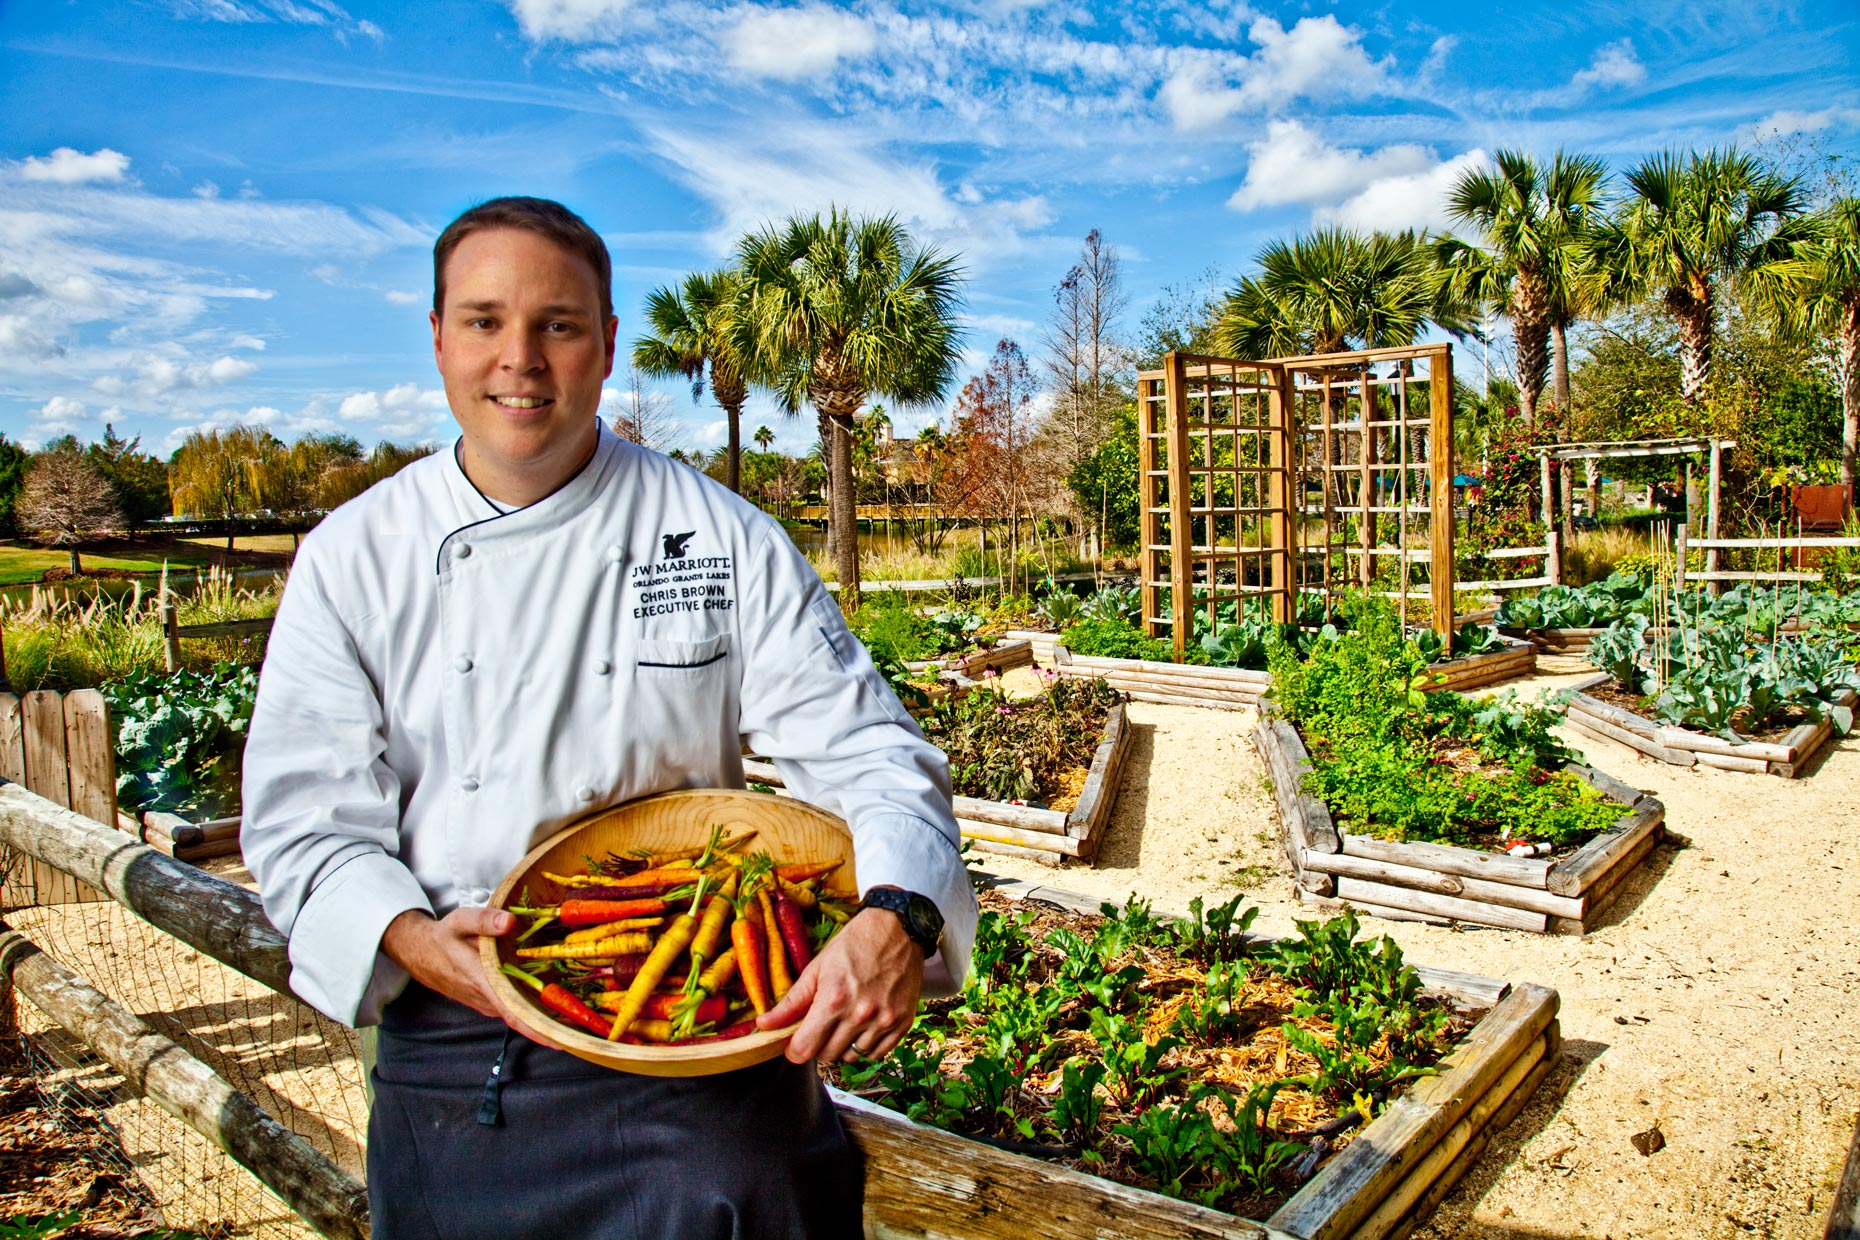 Chef Photogrpahy | Hotel & Resort Photogrpaher|Chef Holding Vegetable in Garden at J W Marriott Hotel